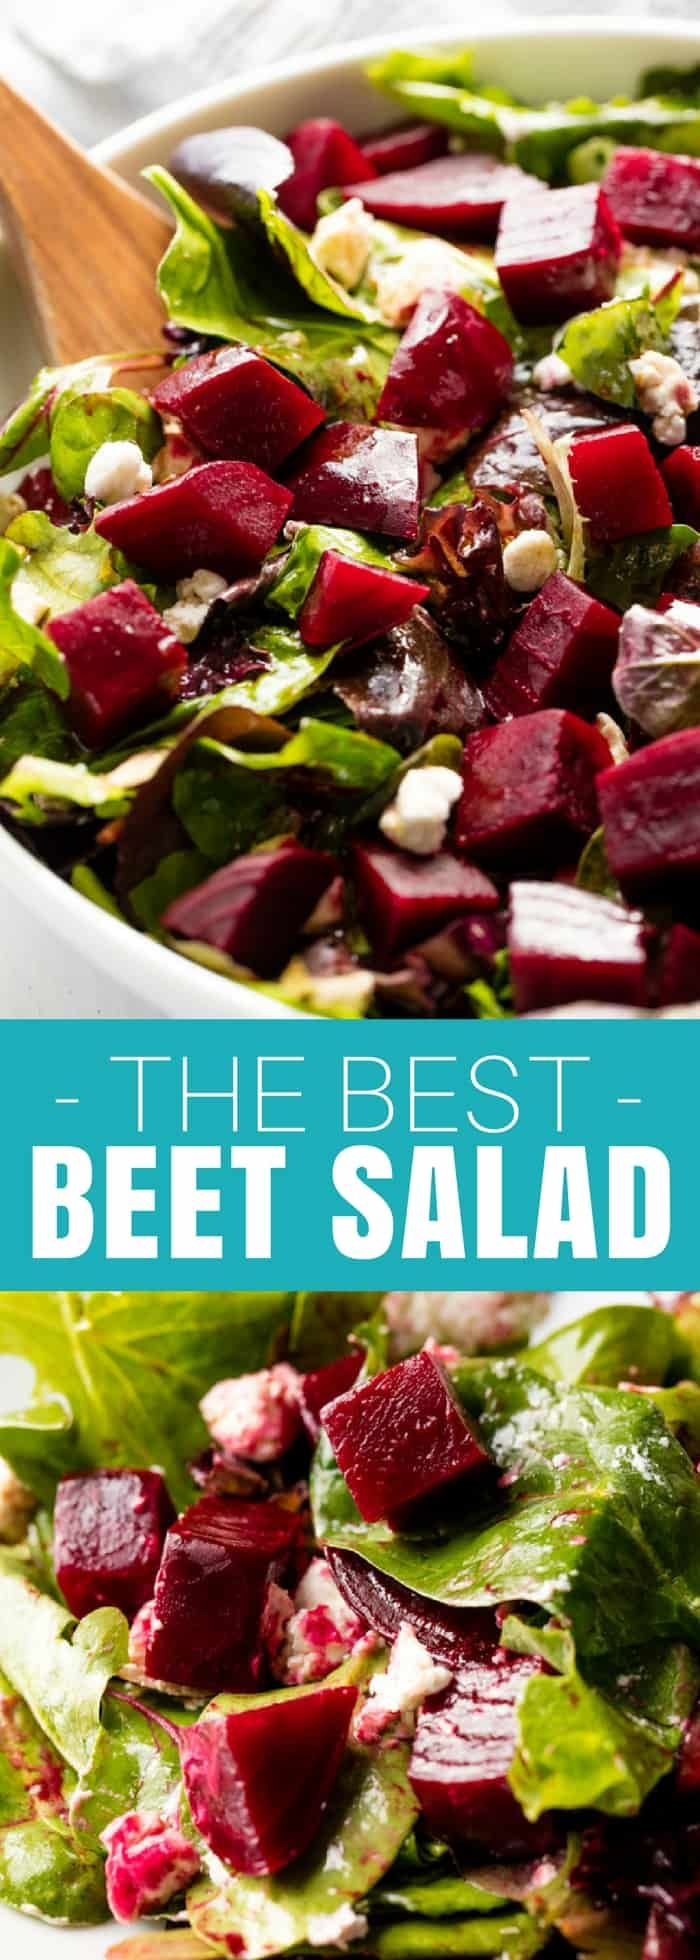 The Best Beet Salad has goat cheese and an orange-balsamic vinaigrette. It's simple to make, and delicious!  #Salad #HealthyRecipes